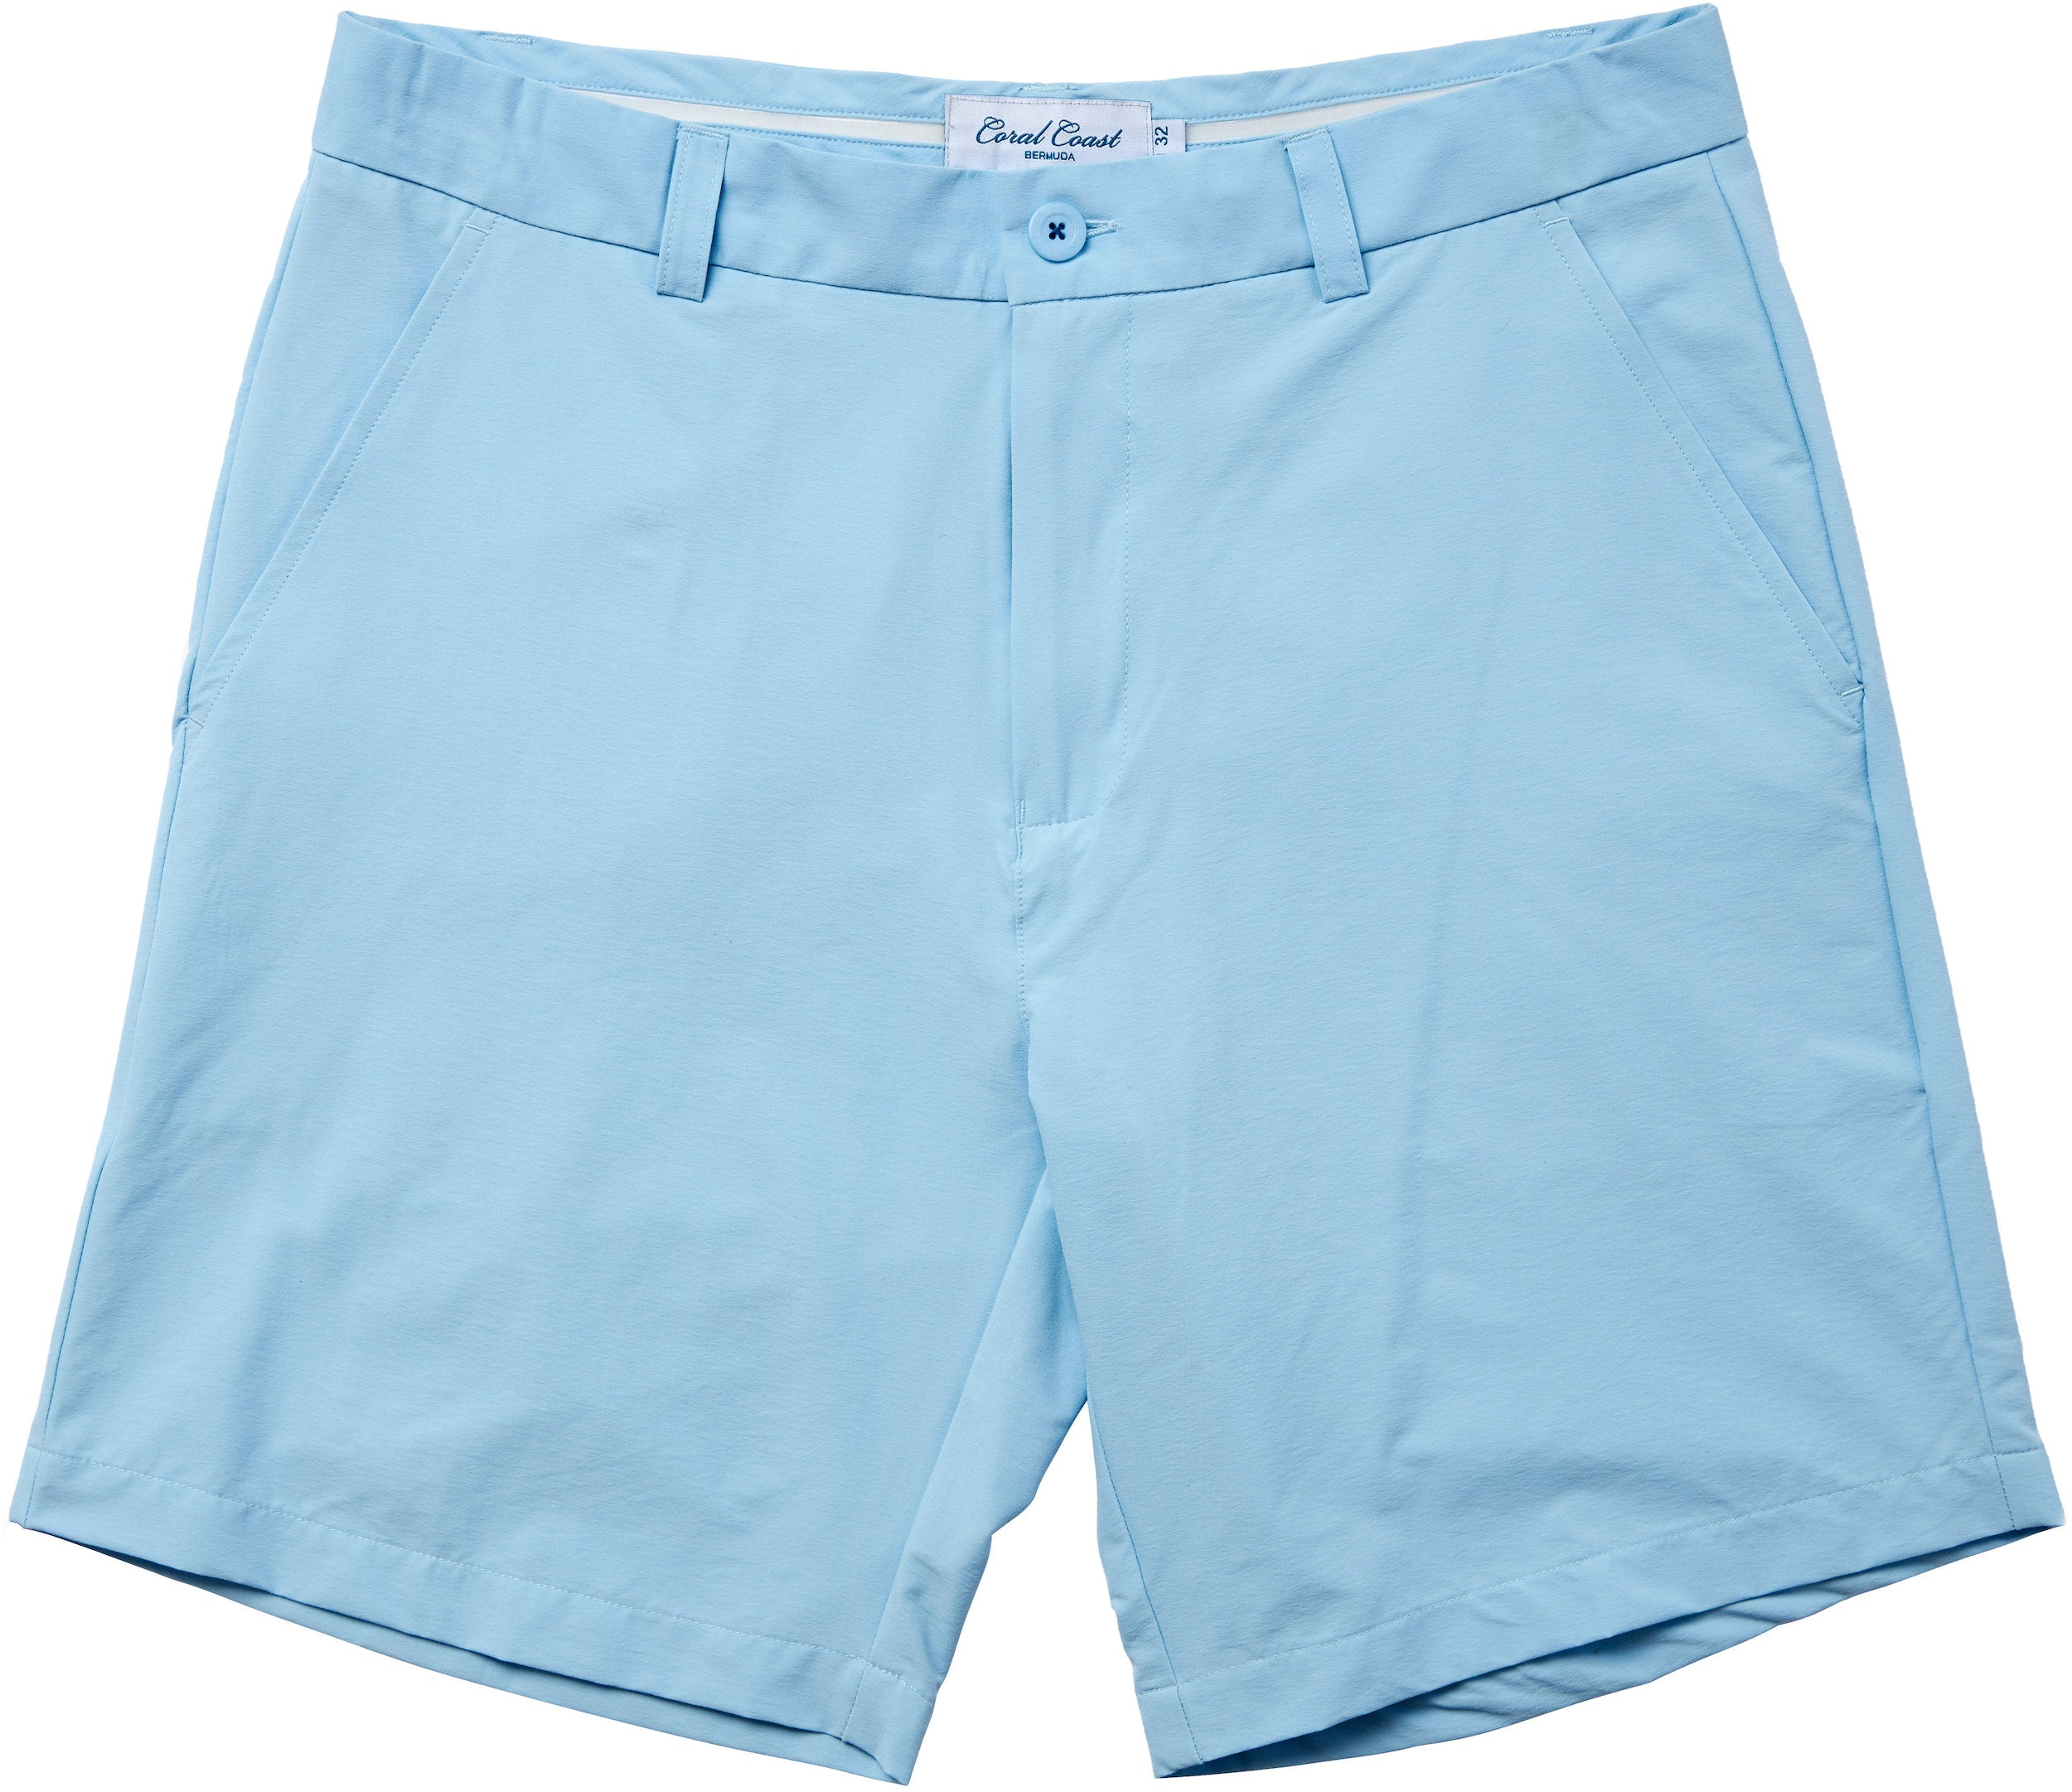 AIRY BLUE PERFORMANCE SHORT